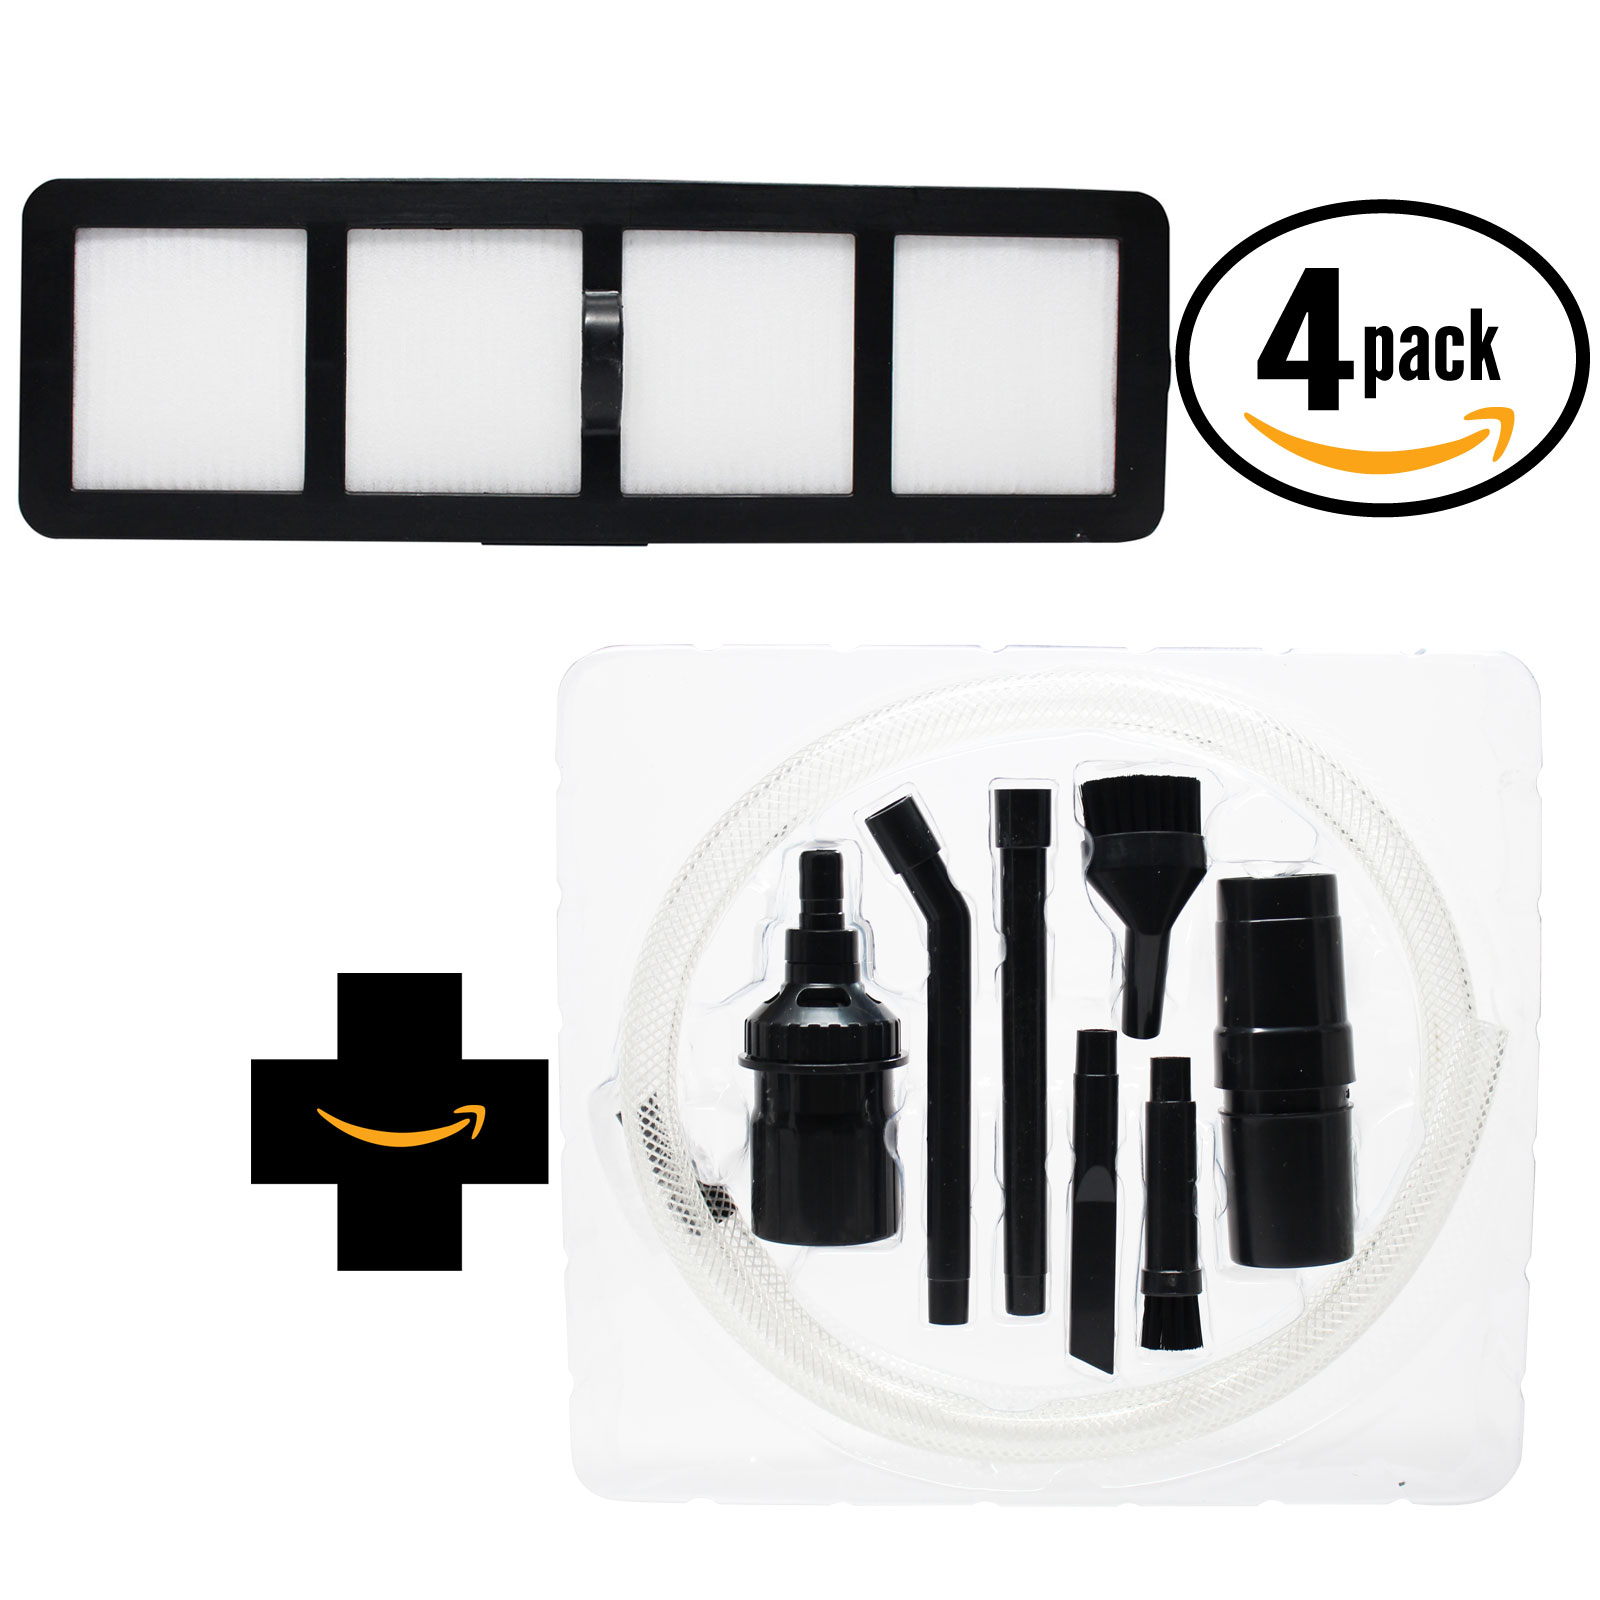 4-Pack Replacement Eureka AS1002 Vacuum HEPA Filter with 7-Piece Micro Vacuum Attachment Kit - Compatible Eureka EF-6 HEPA Filter